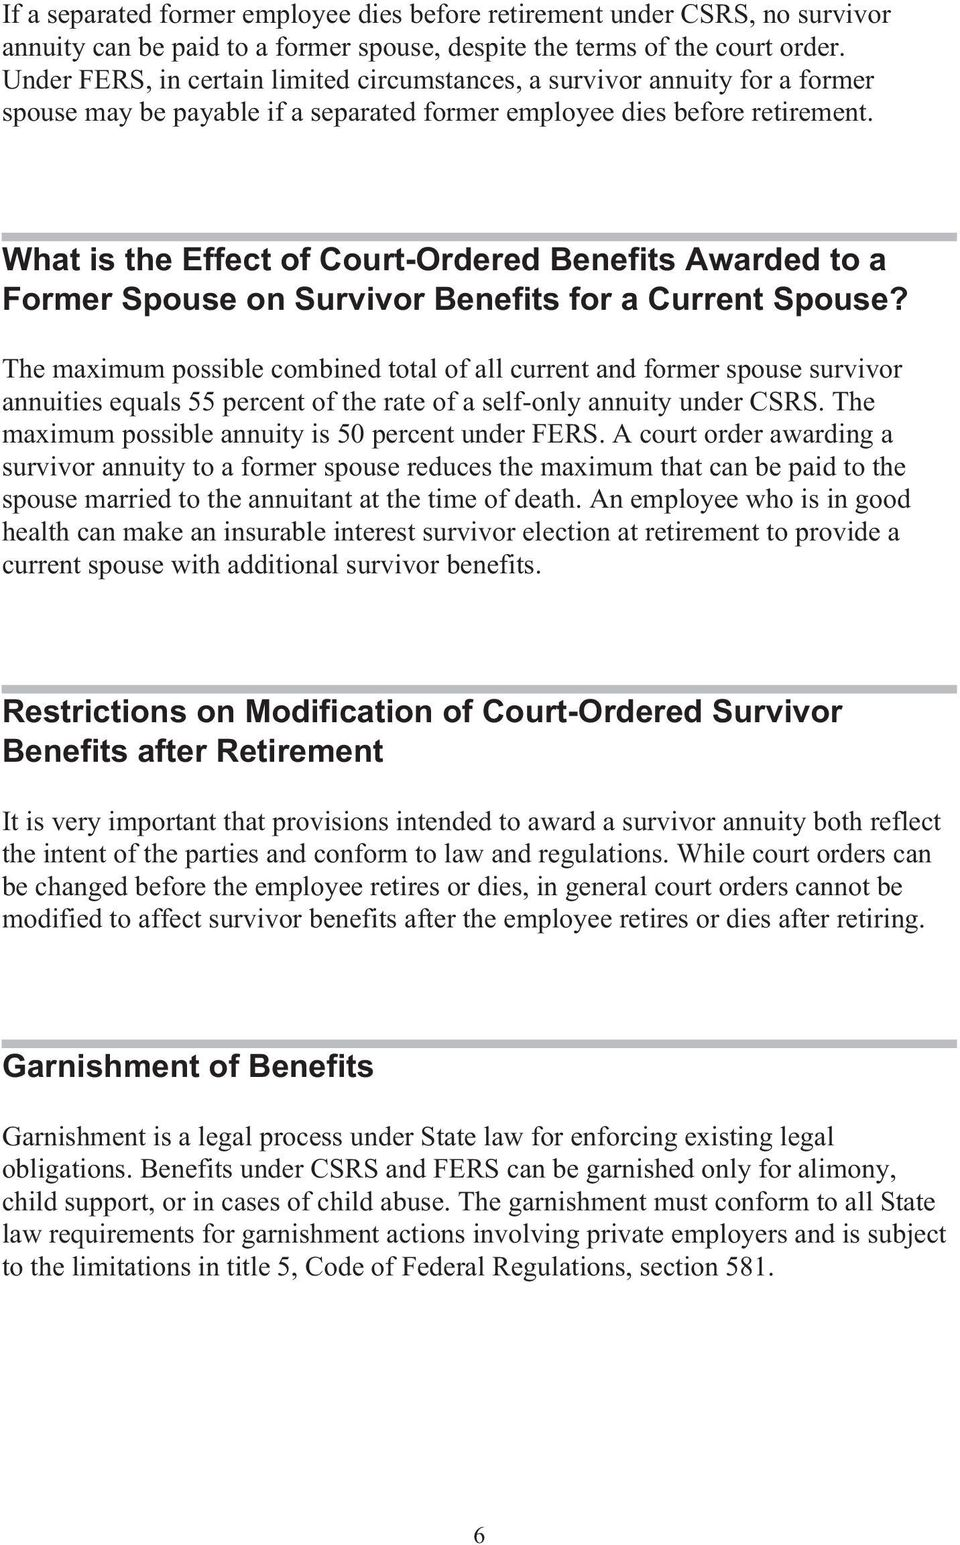 What is the Effect of Court-Ordered Benefits Awarded to a Former Spouse on Survivor Benefits for a Current Spouse?